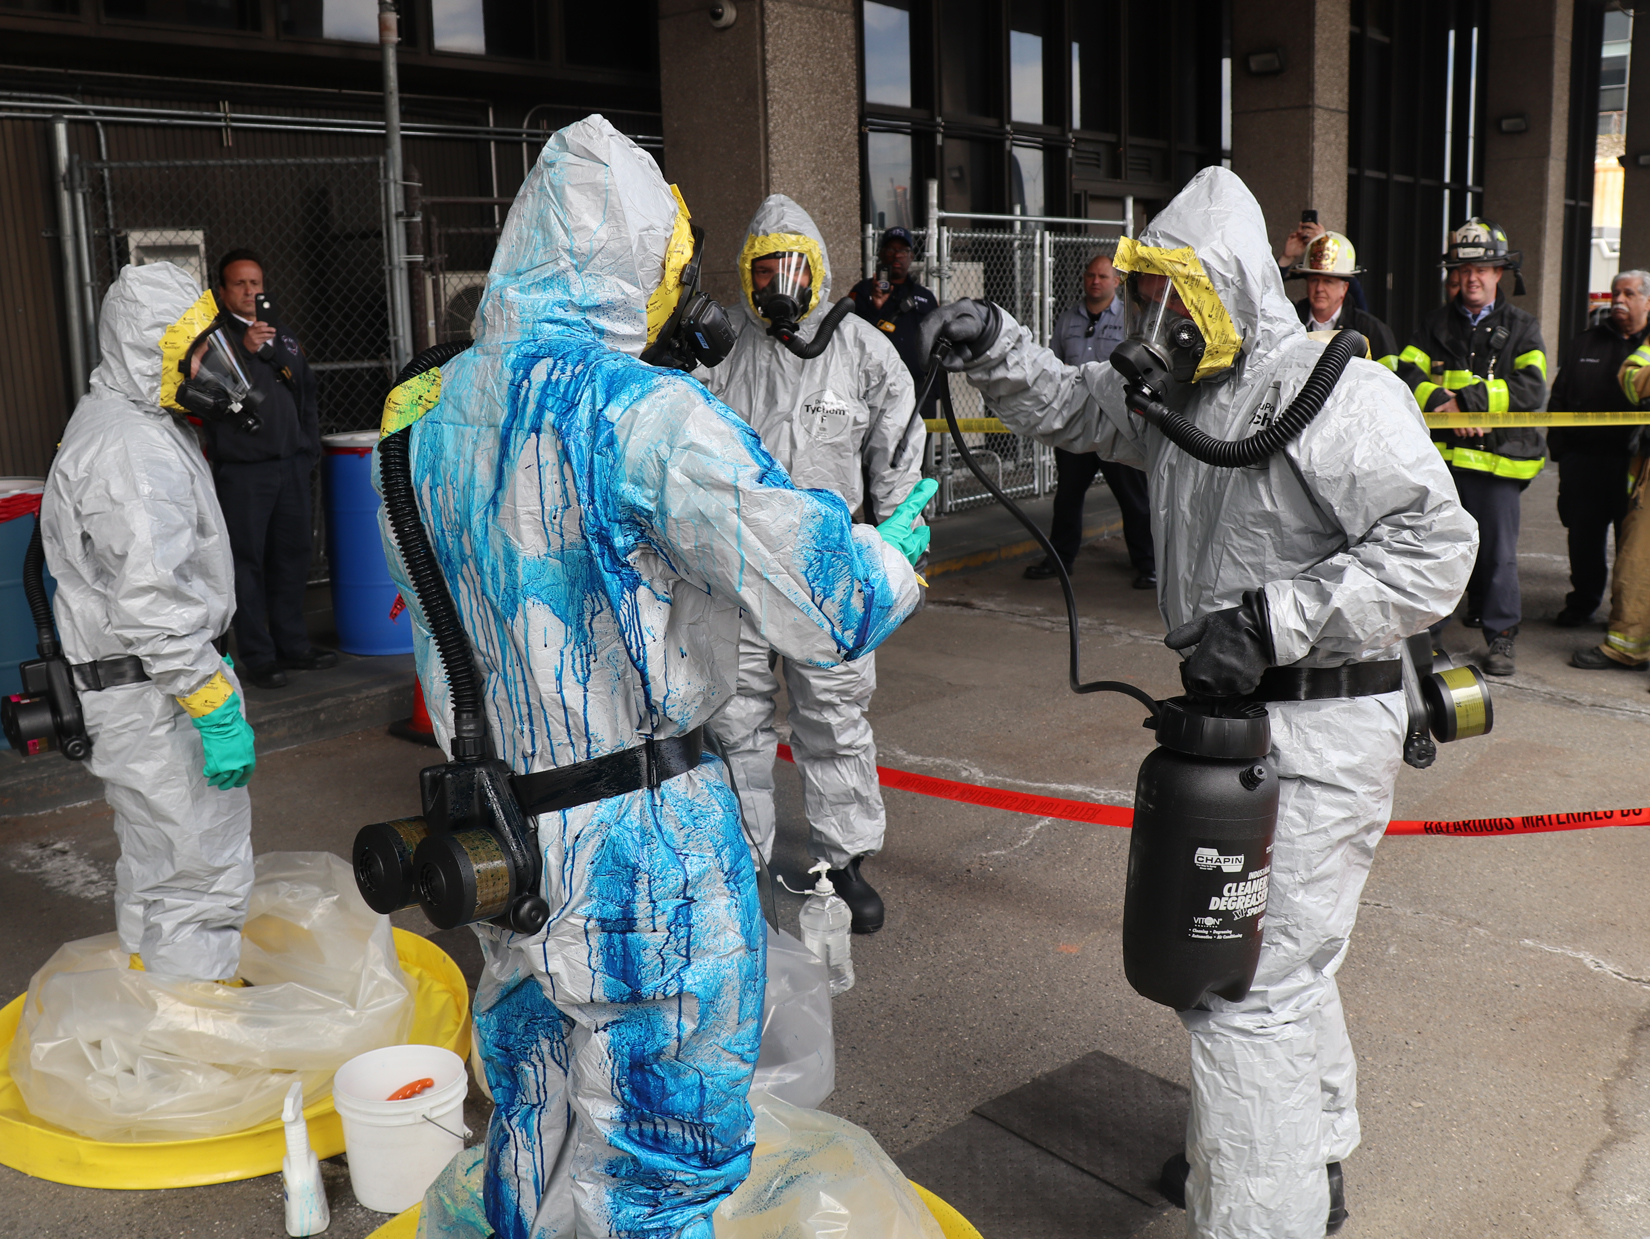 emergency responders dressed in haz-mat suits, with one covered in bleach, are spraying each other with liquids